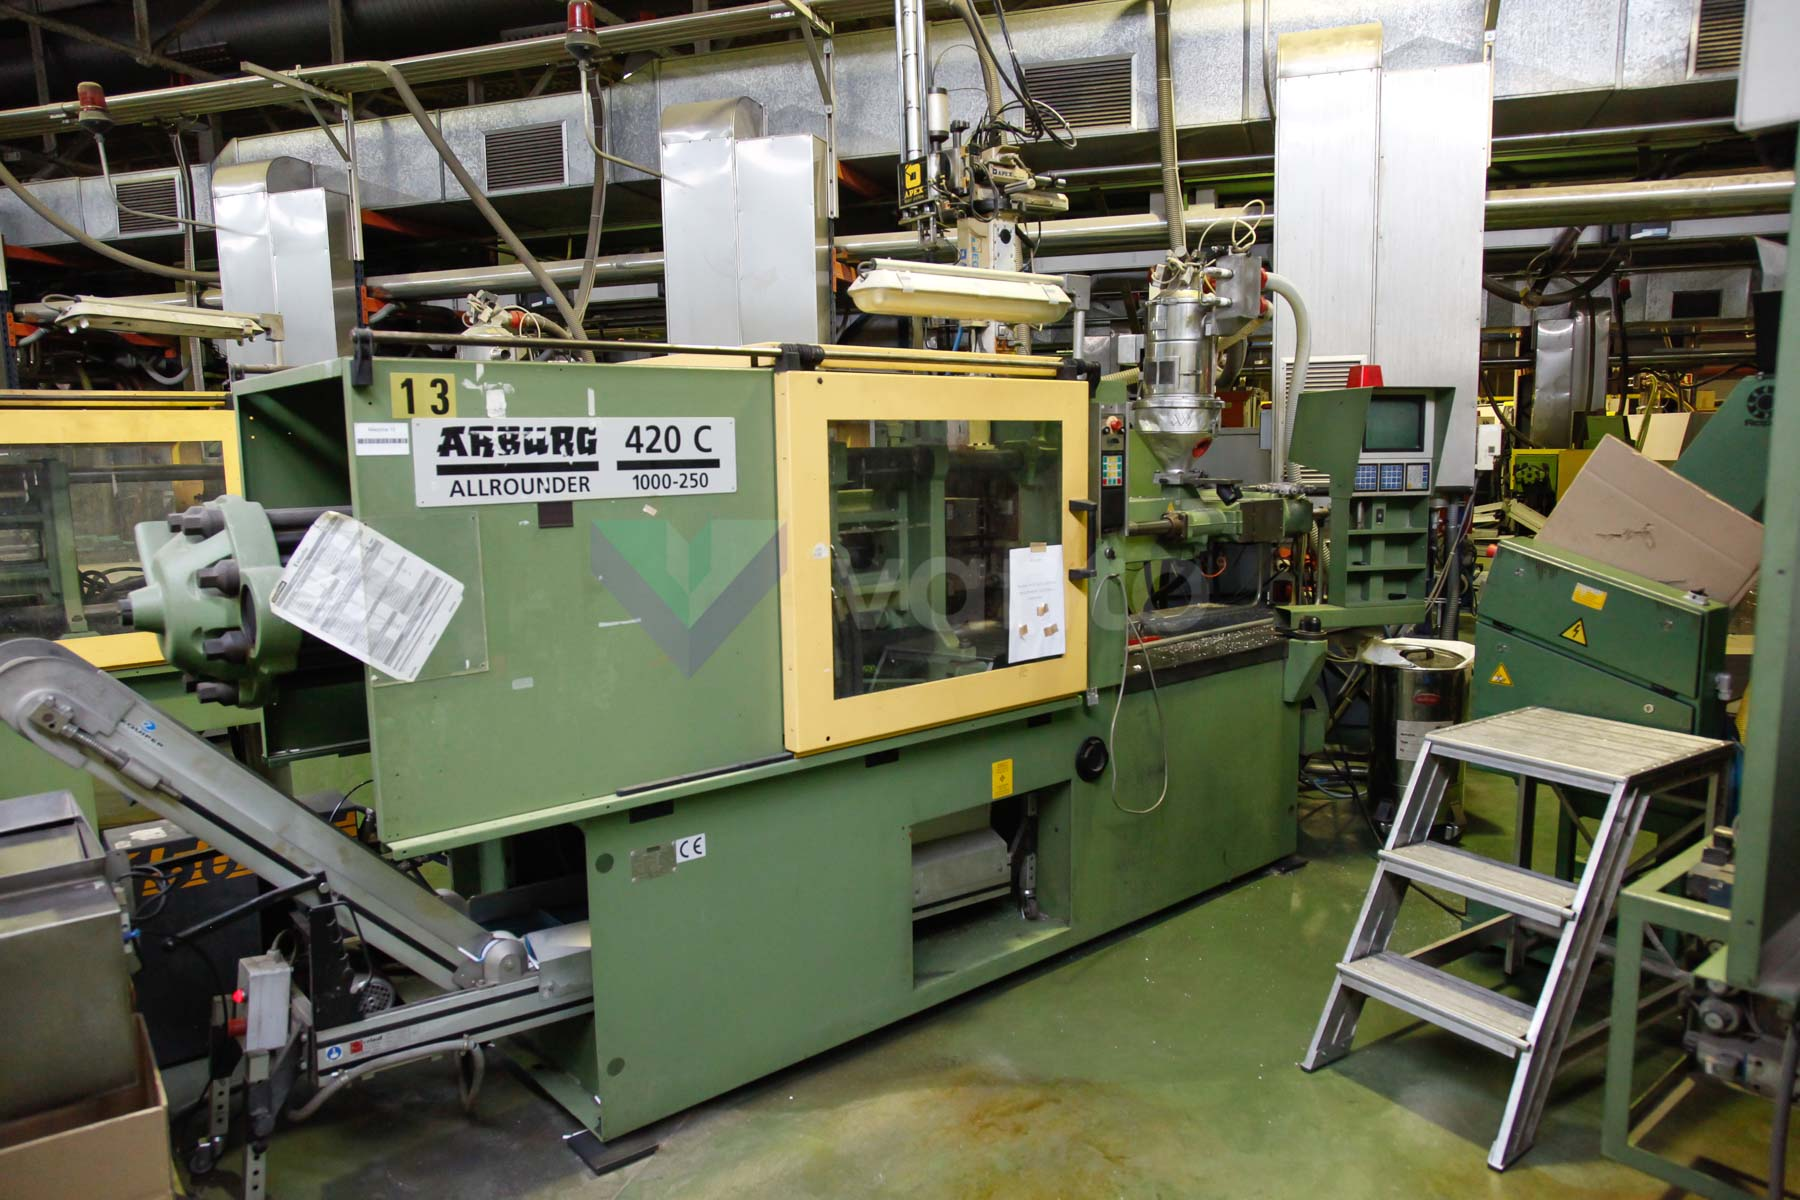 ARBURG 420 C ALLROUNDER 1000 - 250 100t injection molding machine (1997) id4545